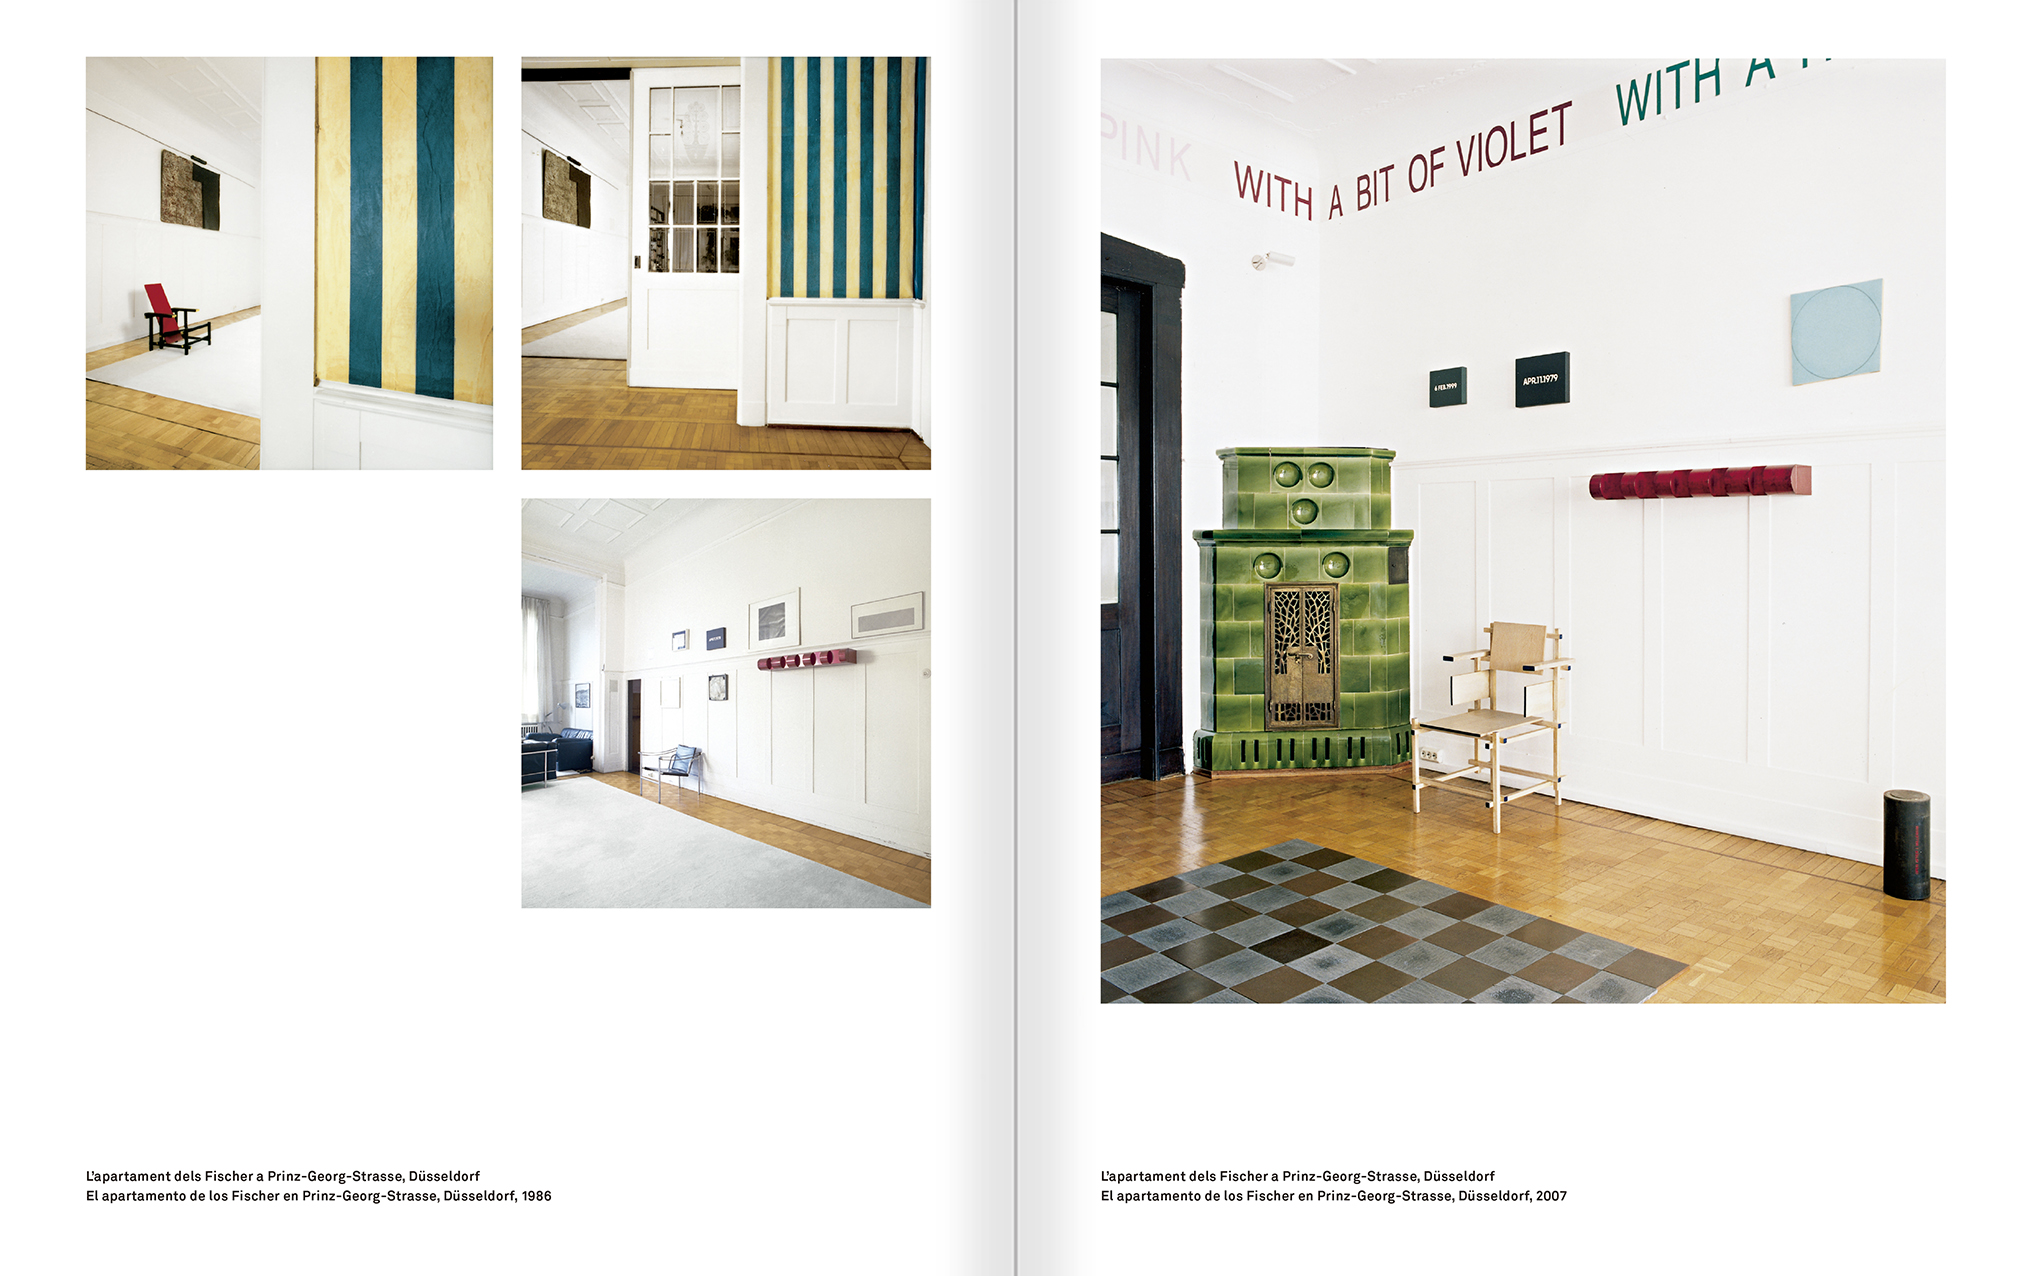 Selection from the catalogue 'With a Probability of Being Seen. Dorothee and Konrad Fischer: Archives of an Attitude', pages 164 and 165